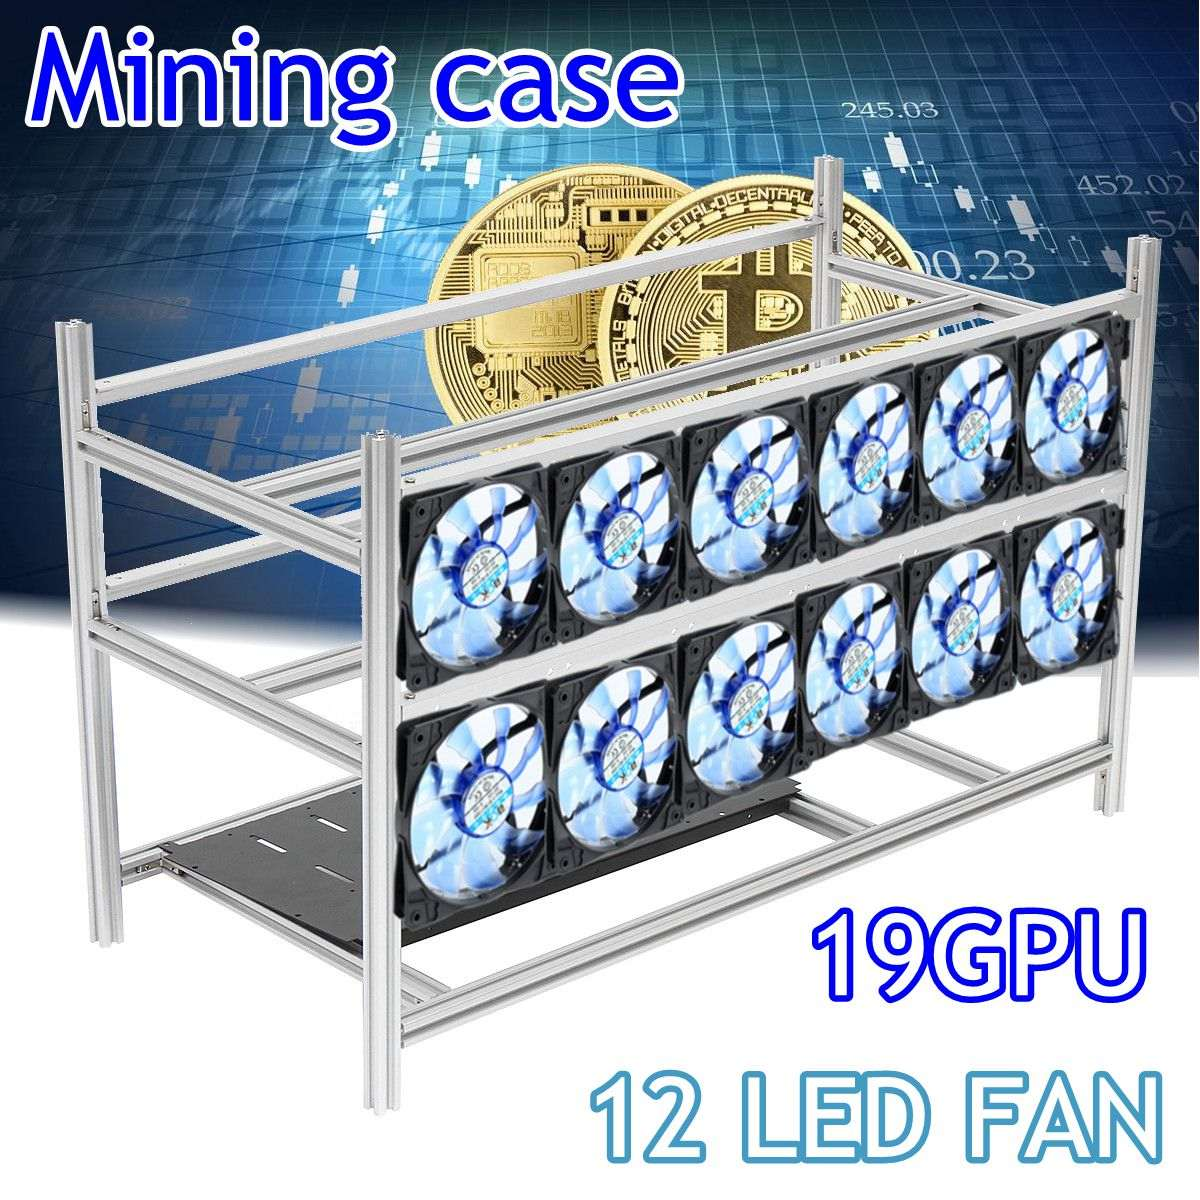 Stackable Open Air Mining Rig Frame Miner Case For 19 GPU ETC BTH 3 Power Supply New Computer Mining Case Frame Server Chassis new 4u industrial computer case parkson 4u server computer case huntkey baisheng s400 4u standard computer case